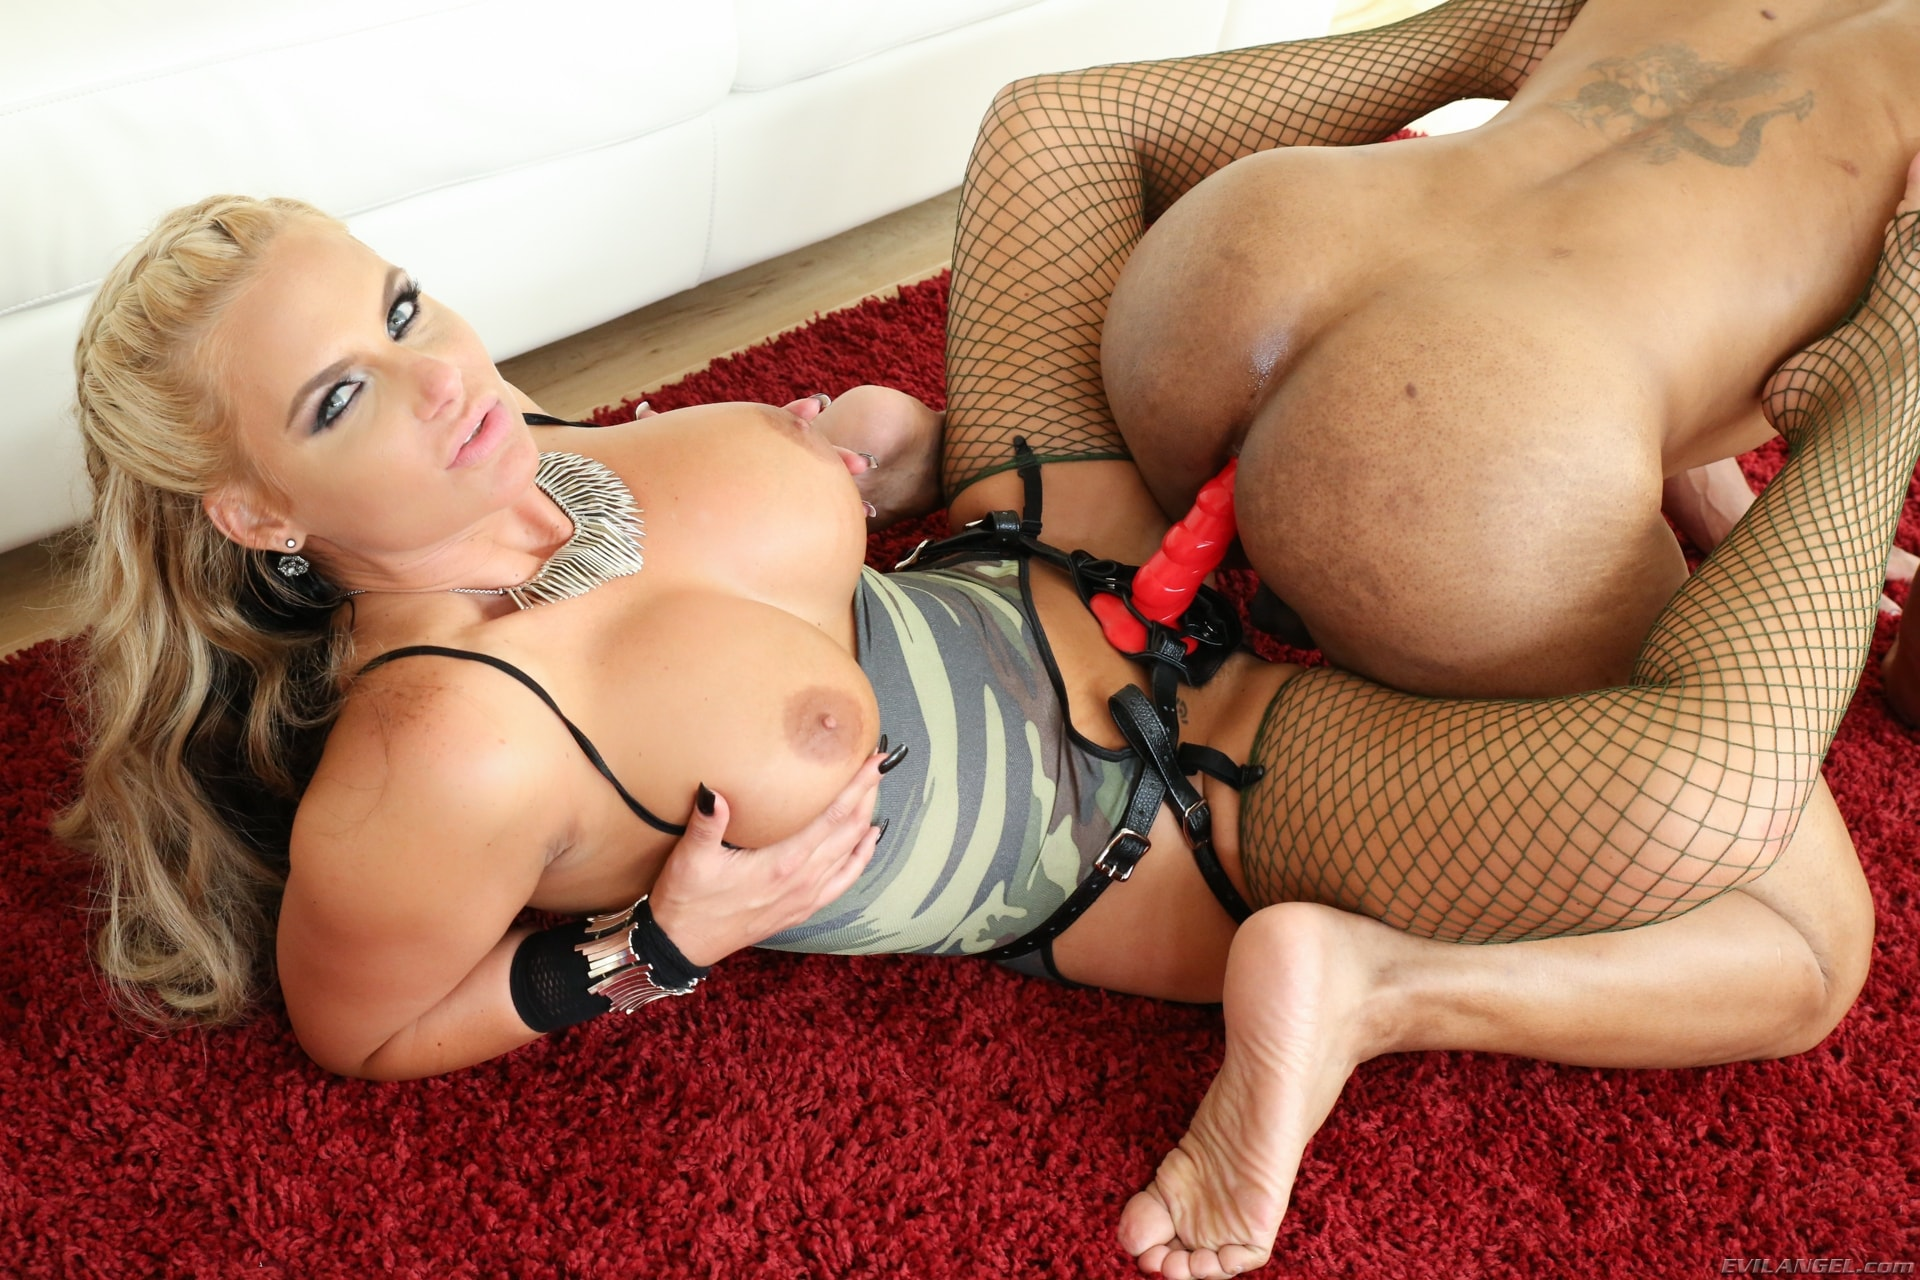 Busty milf dominate ryan keely has sex with a client picture